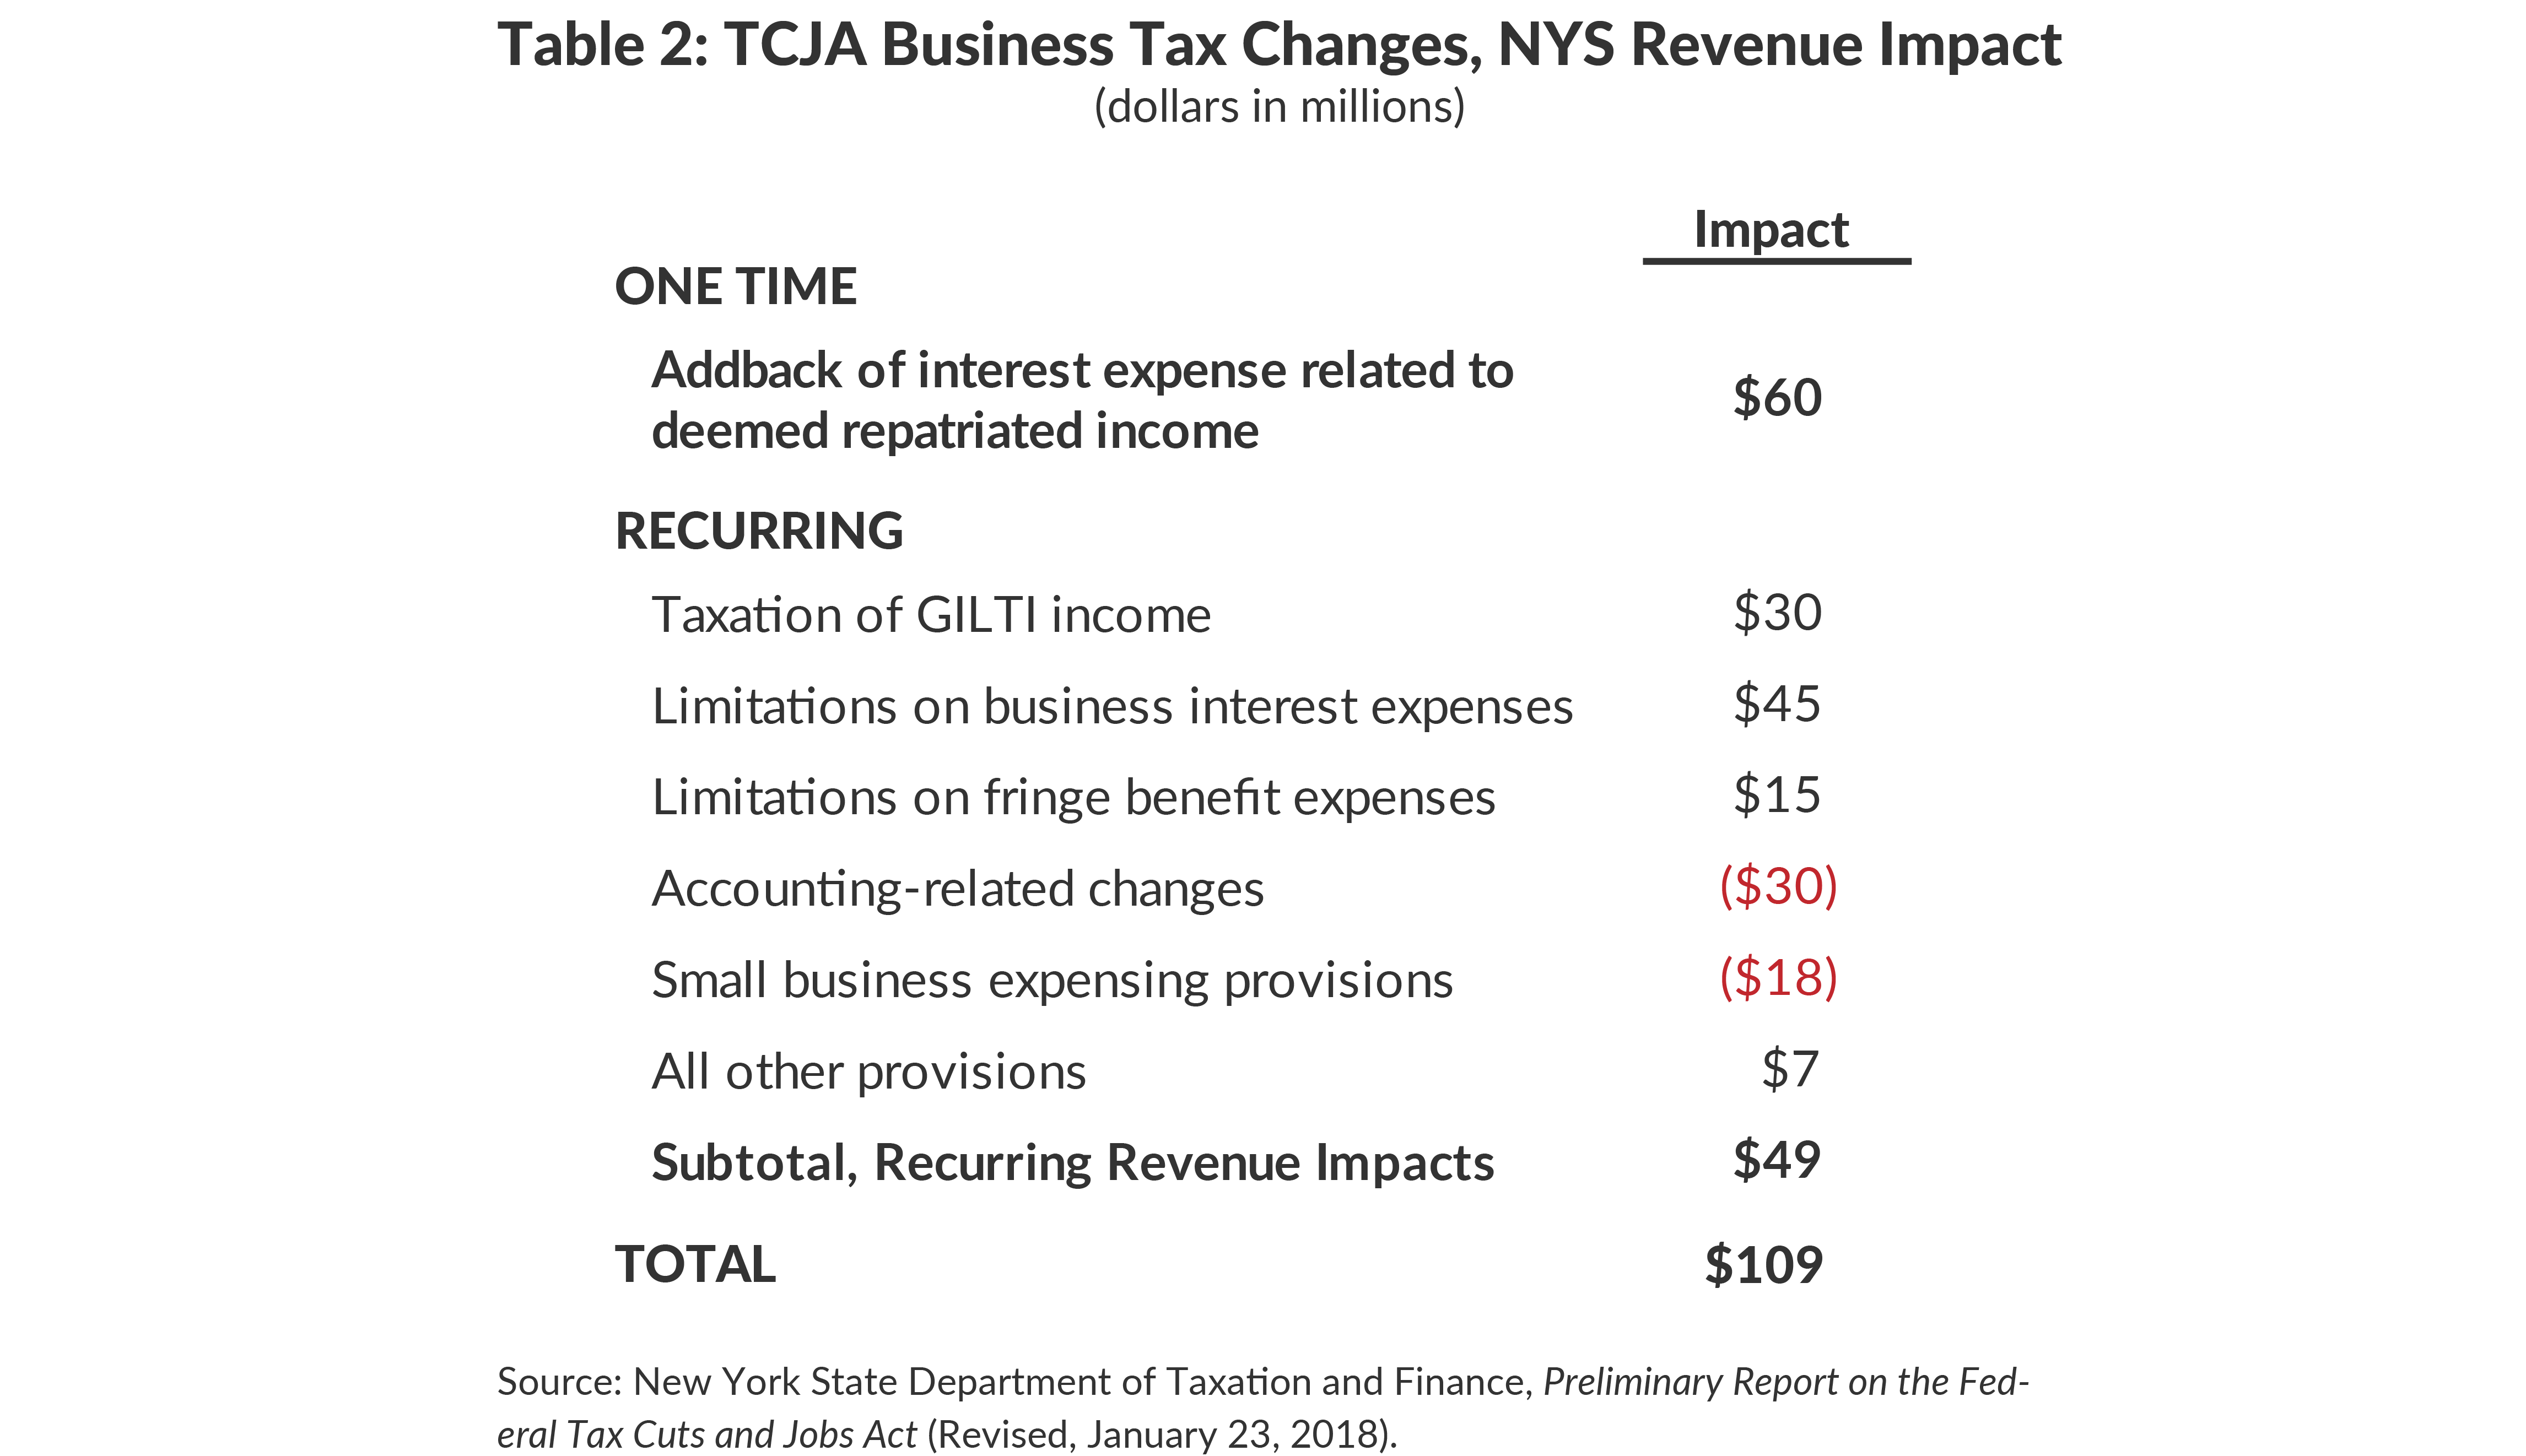 Table 2: Projected NYS Revenue Impact of TCJA Business Changes